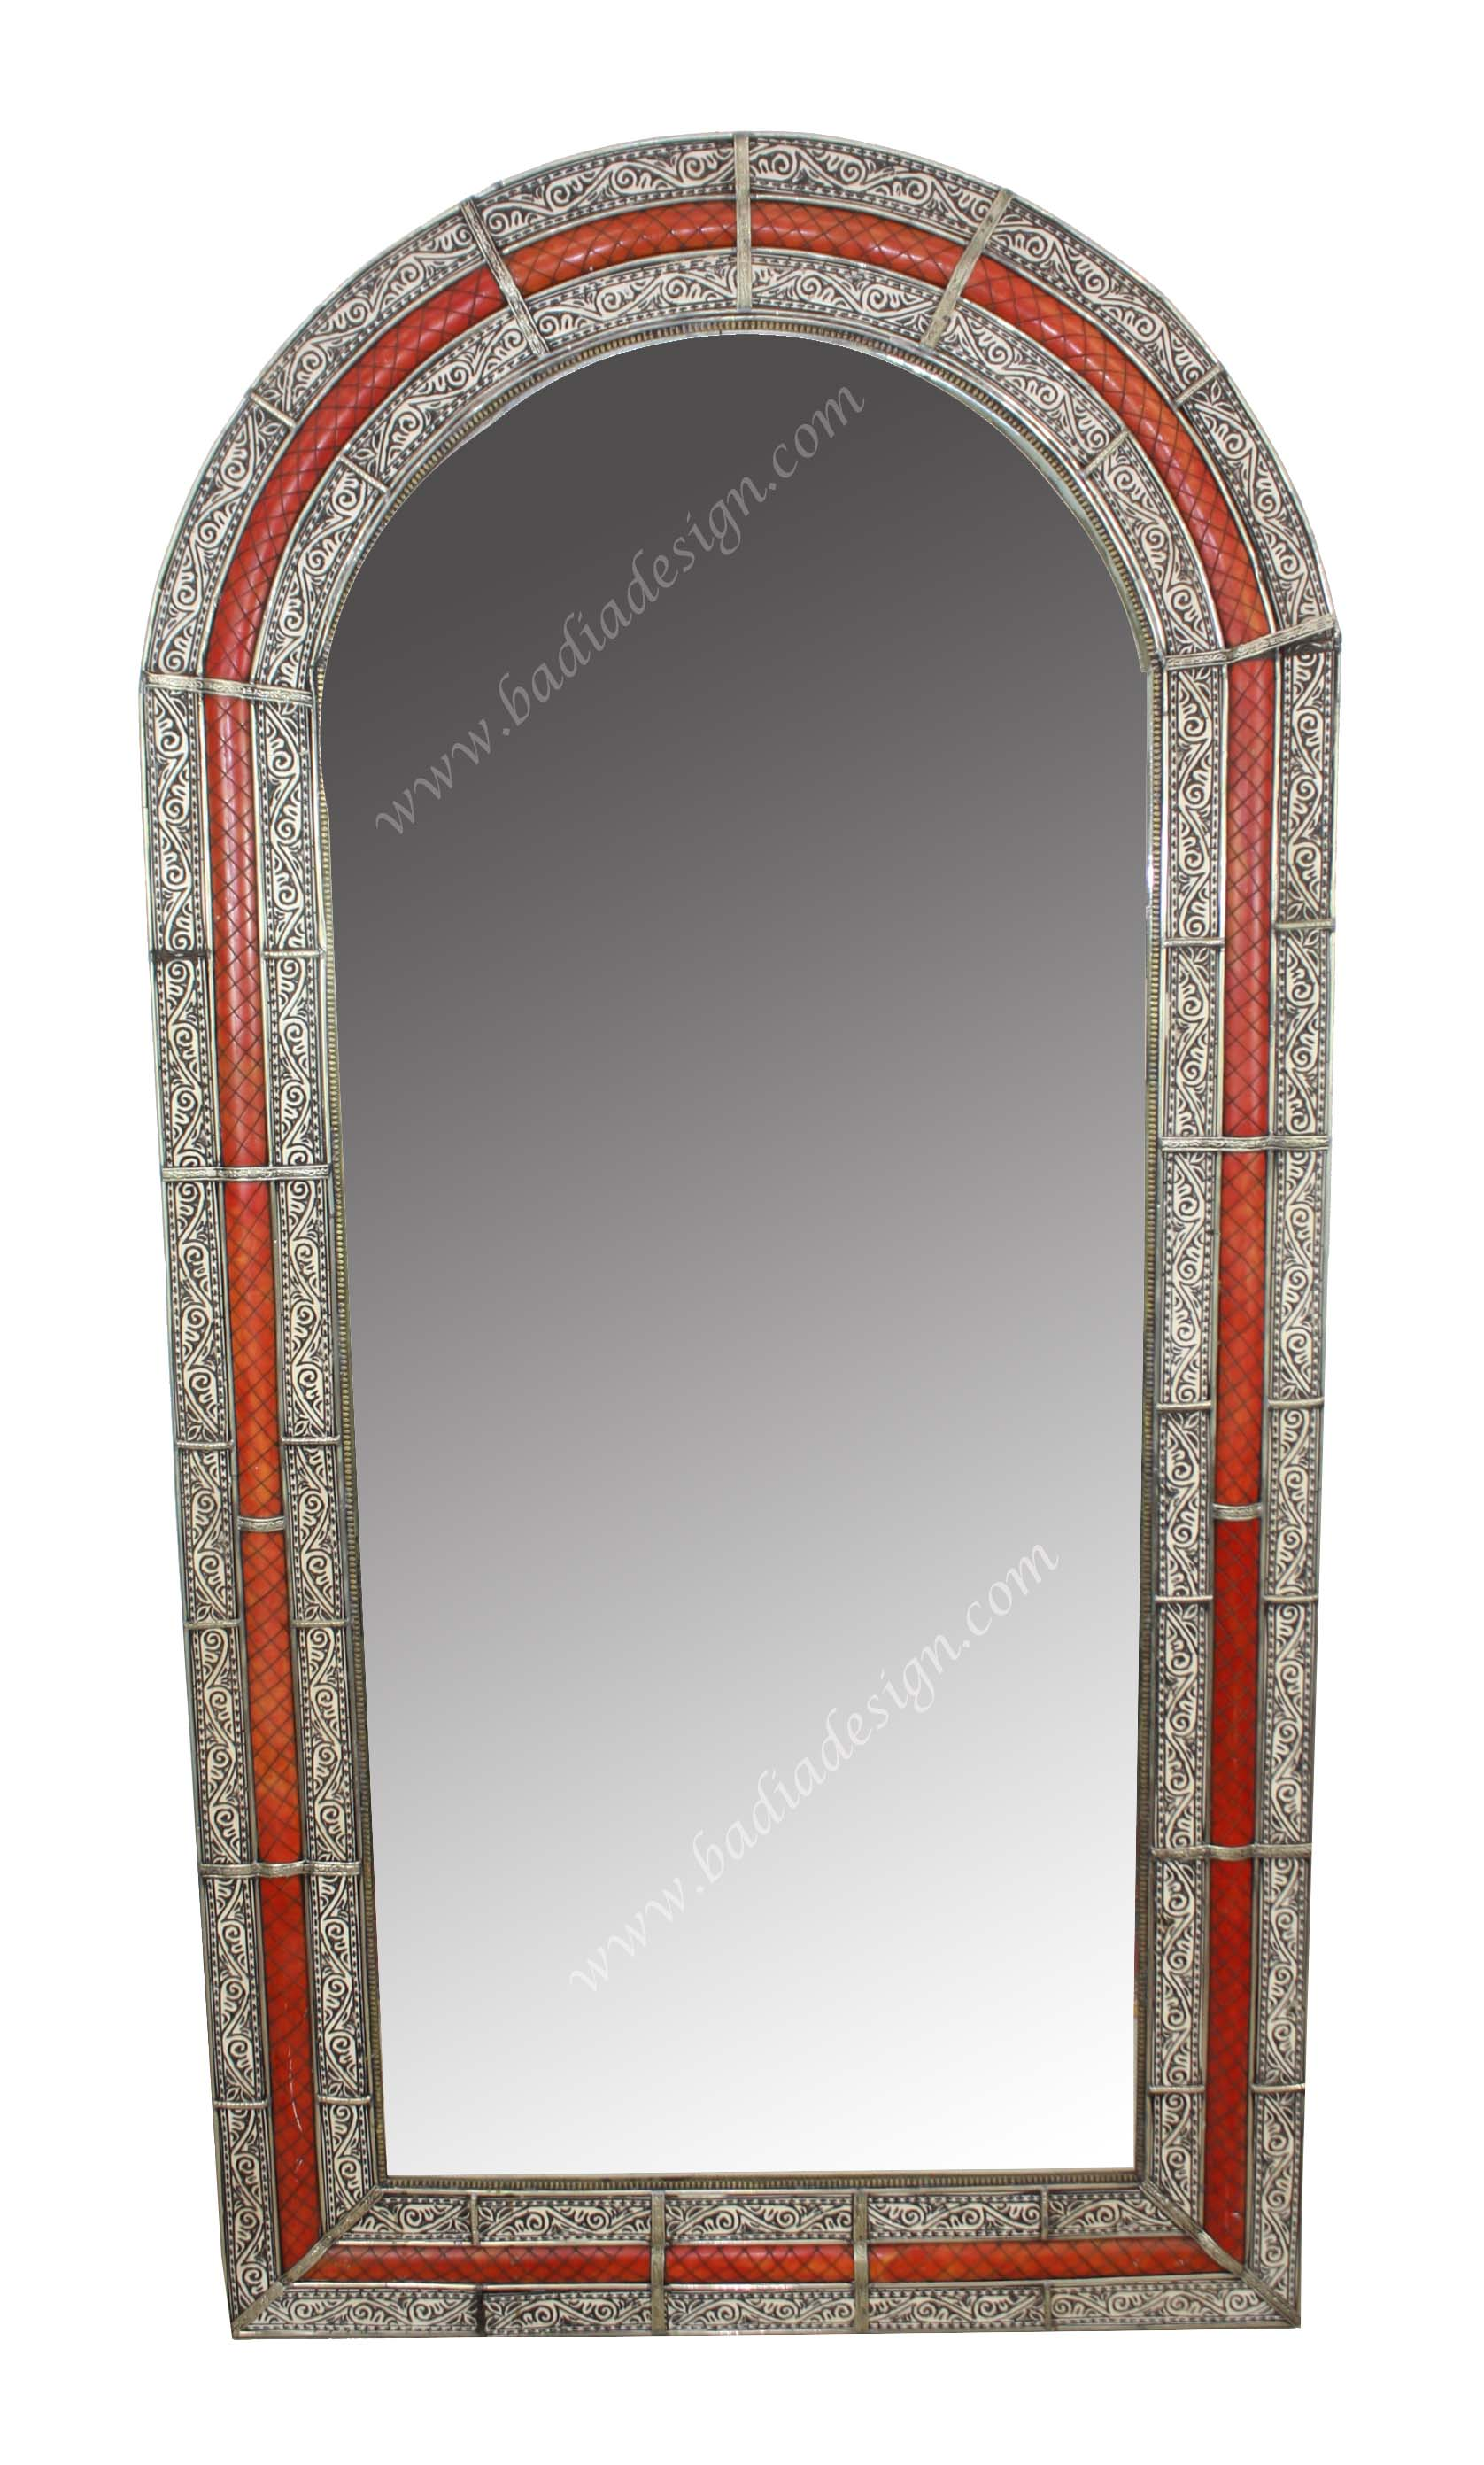 moroccan-camel-bone-mirror-m-mr004.jpg